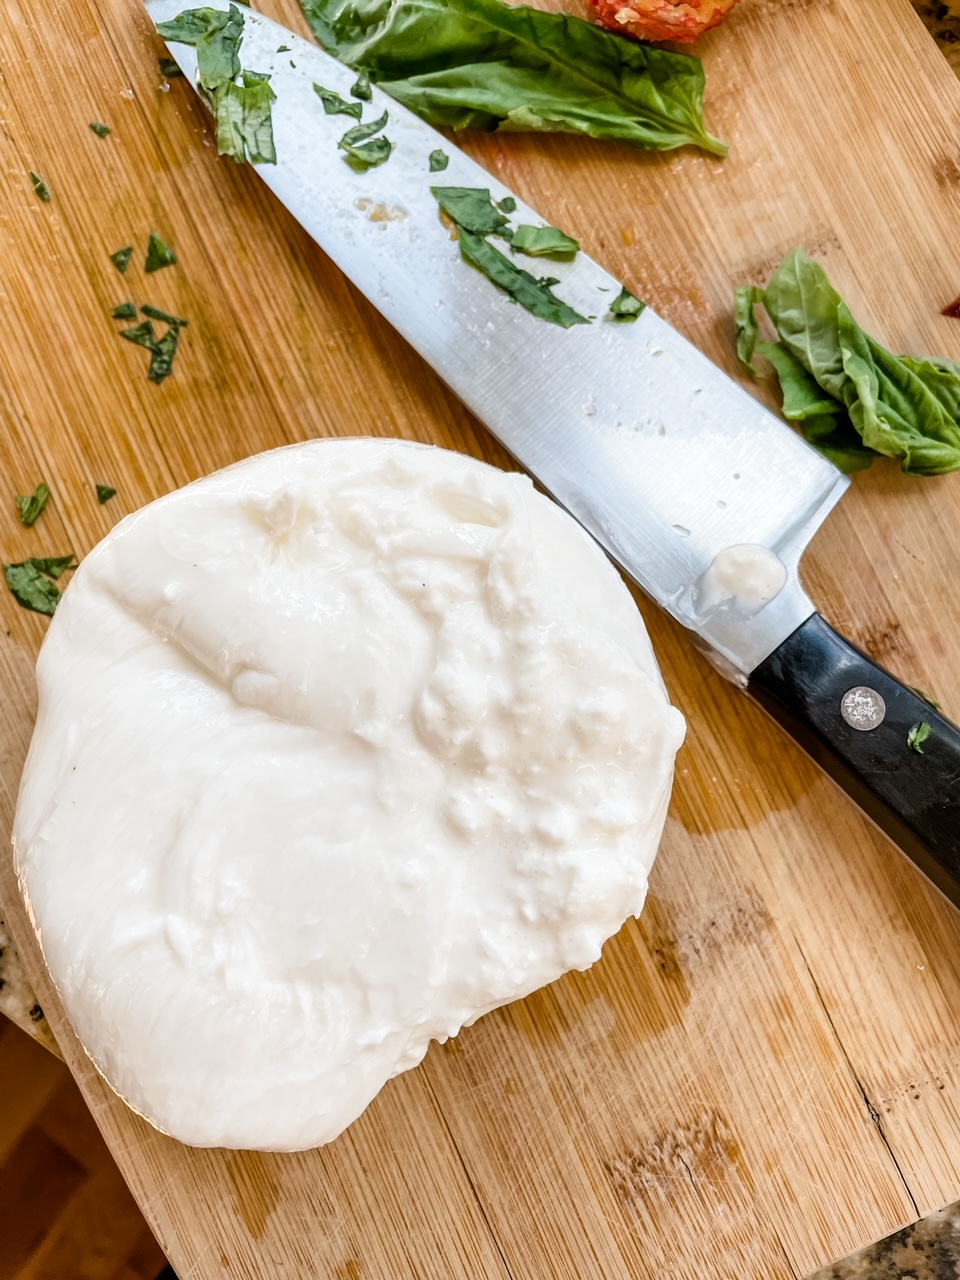 A hunk of burrata, sliced in half, next to a knife on a cutting board